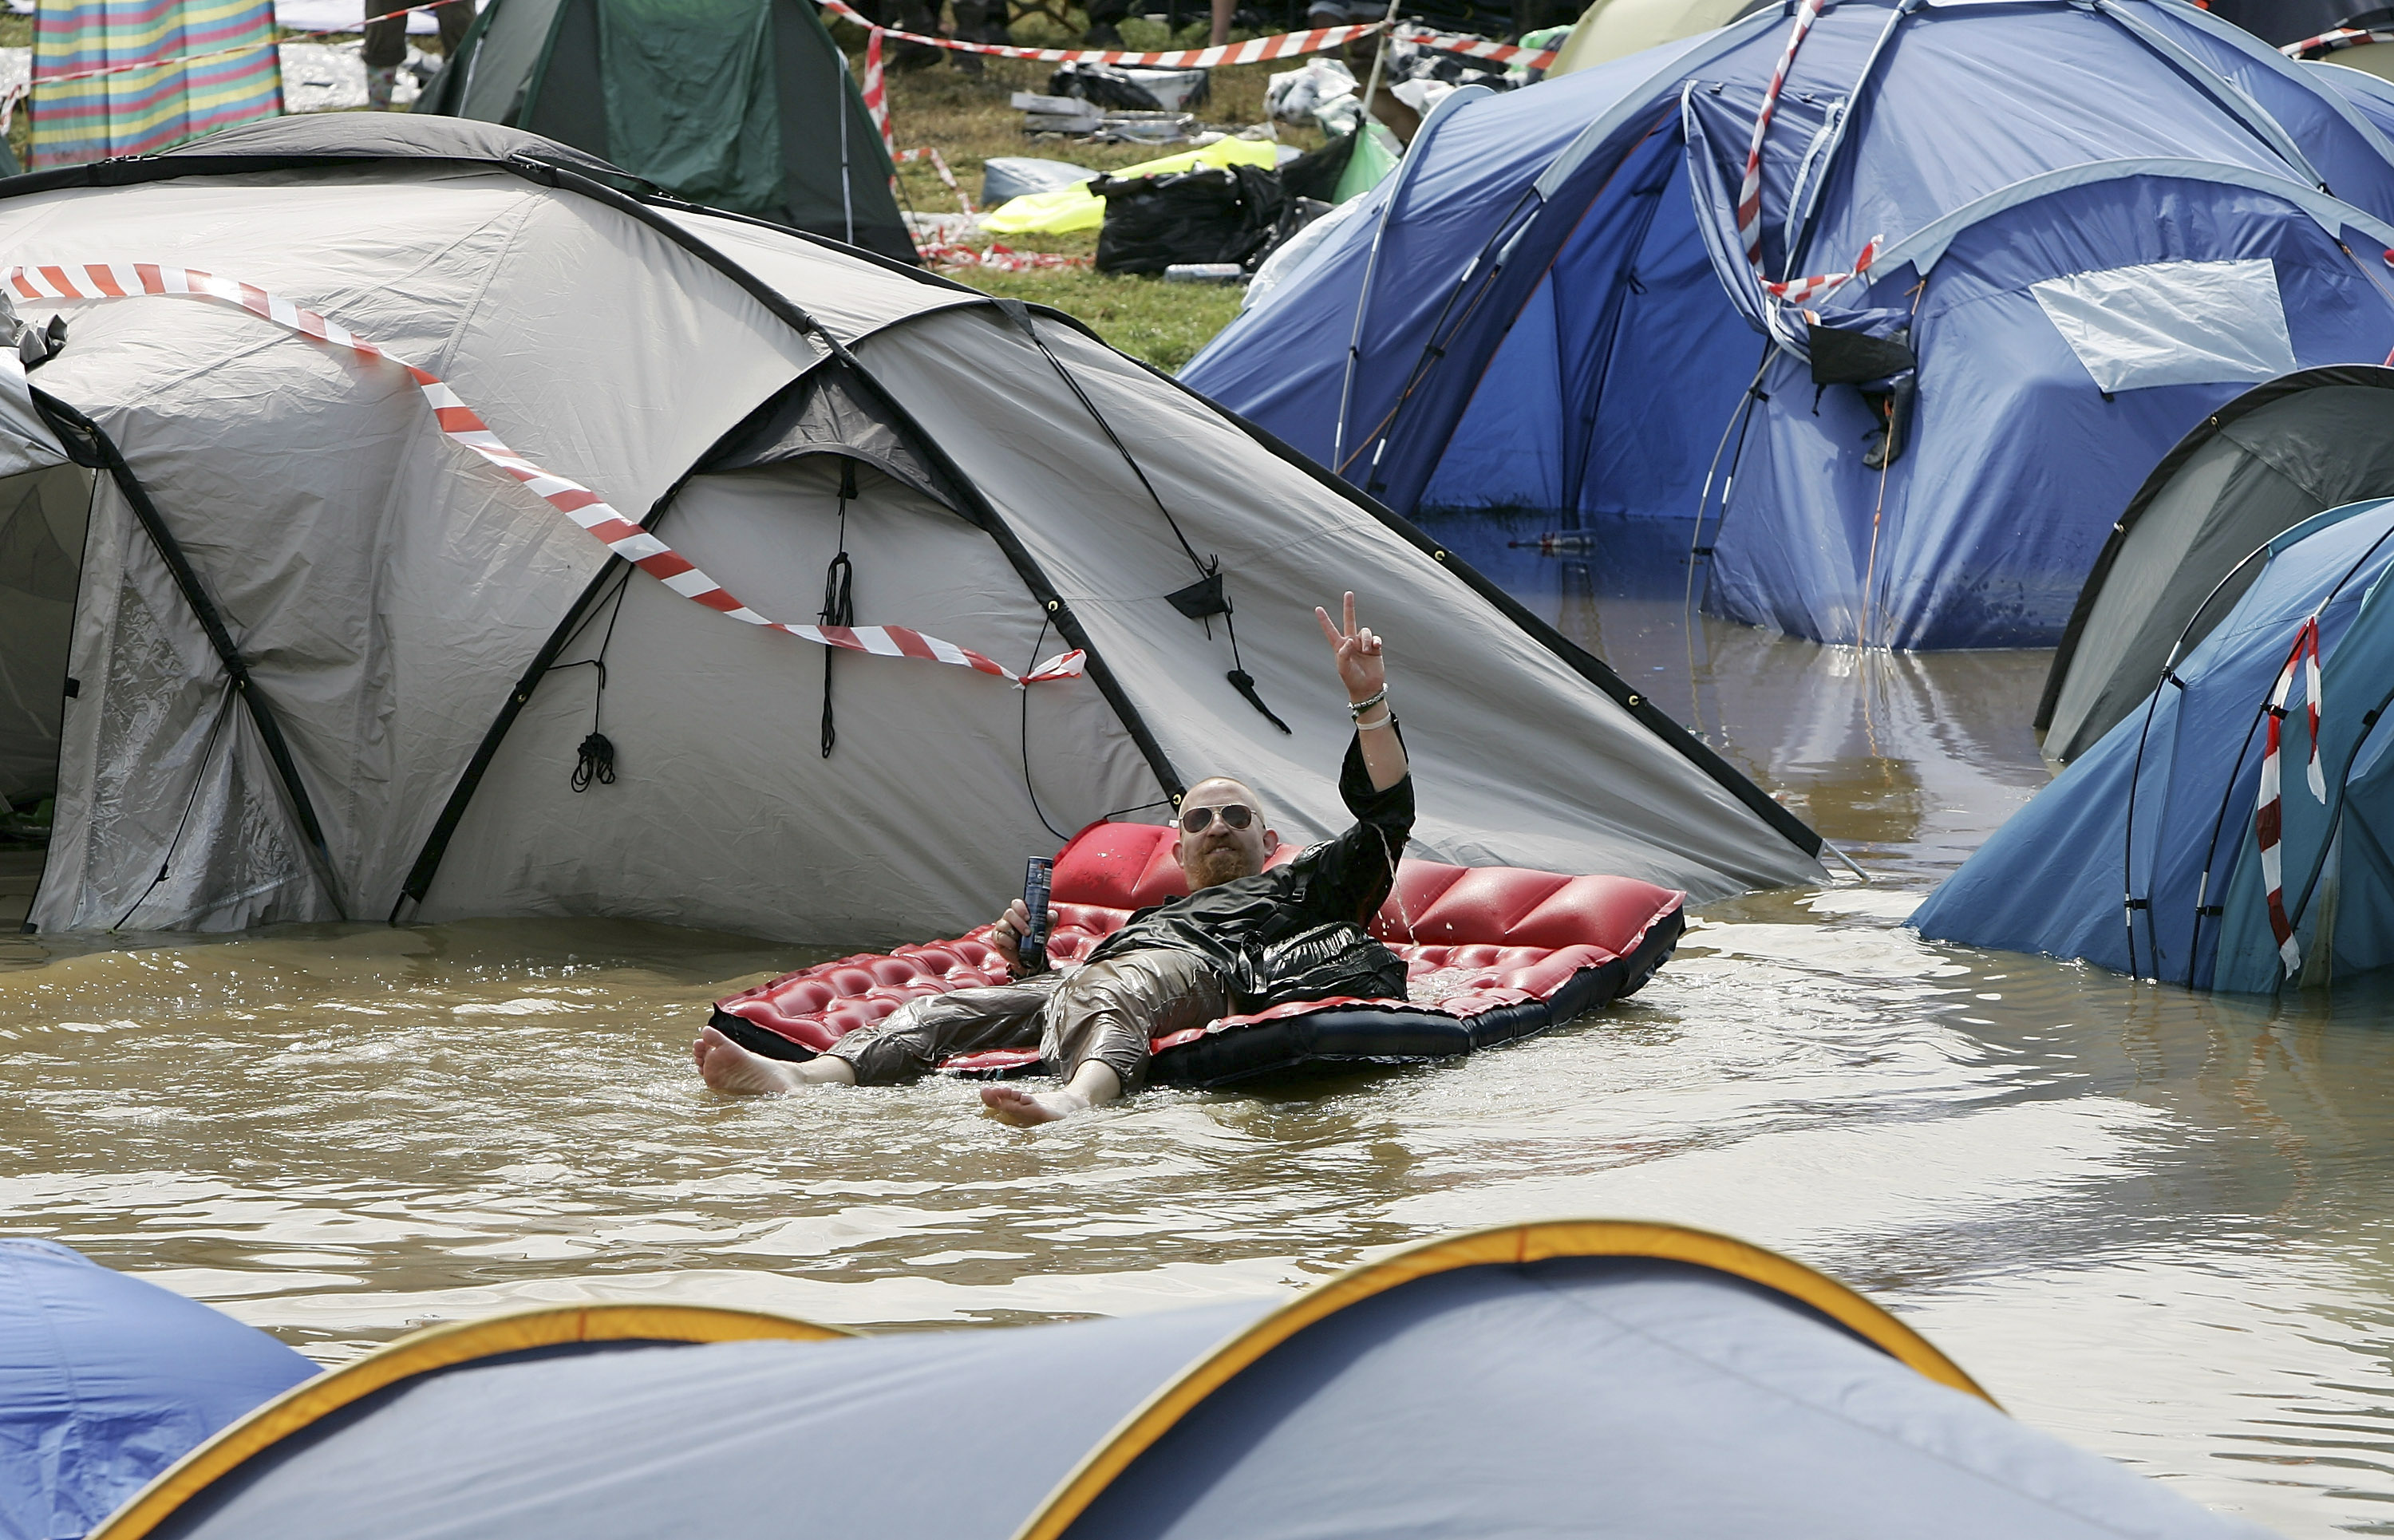 A camp site flooded by heavy rain on the first day of the Glastonbury Music Festival 2005 at Worthy Farm, Pilton, June 24, 2005 in Somerset, England.